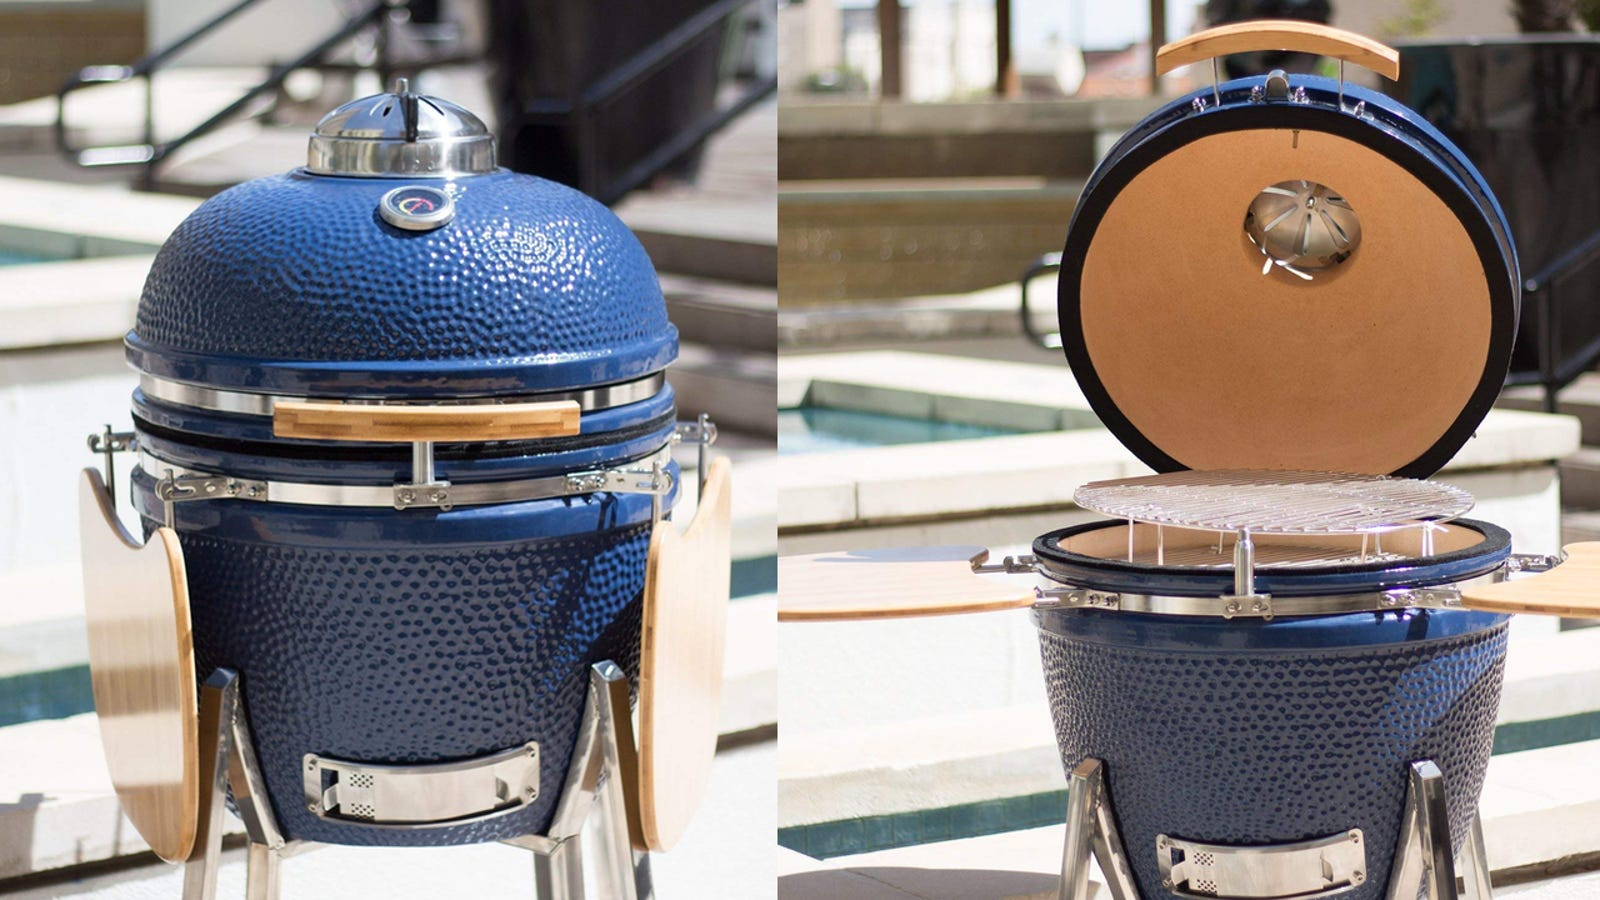 Save 450 On A Kamado Grill So You Can Spend 450 On Meat